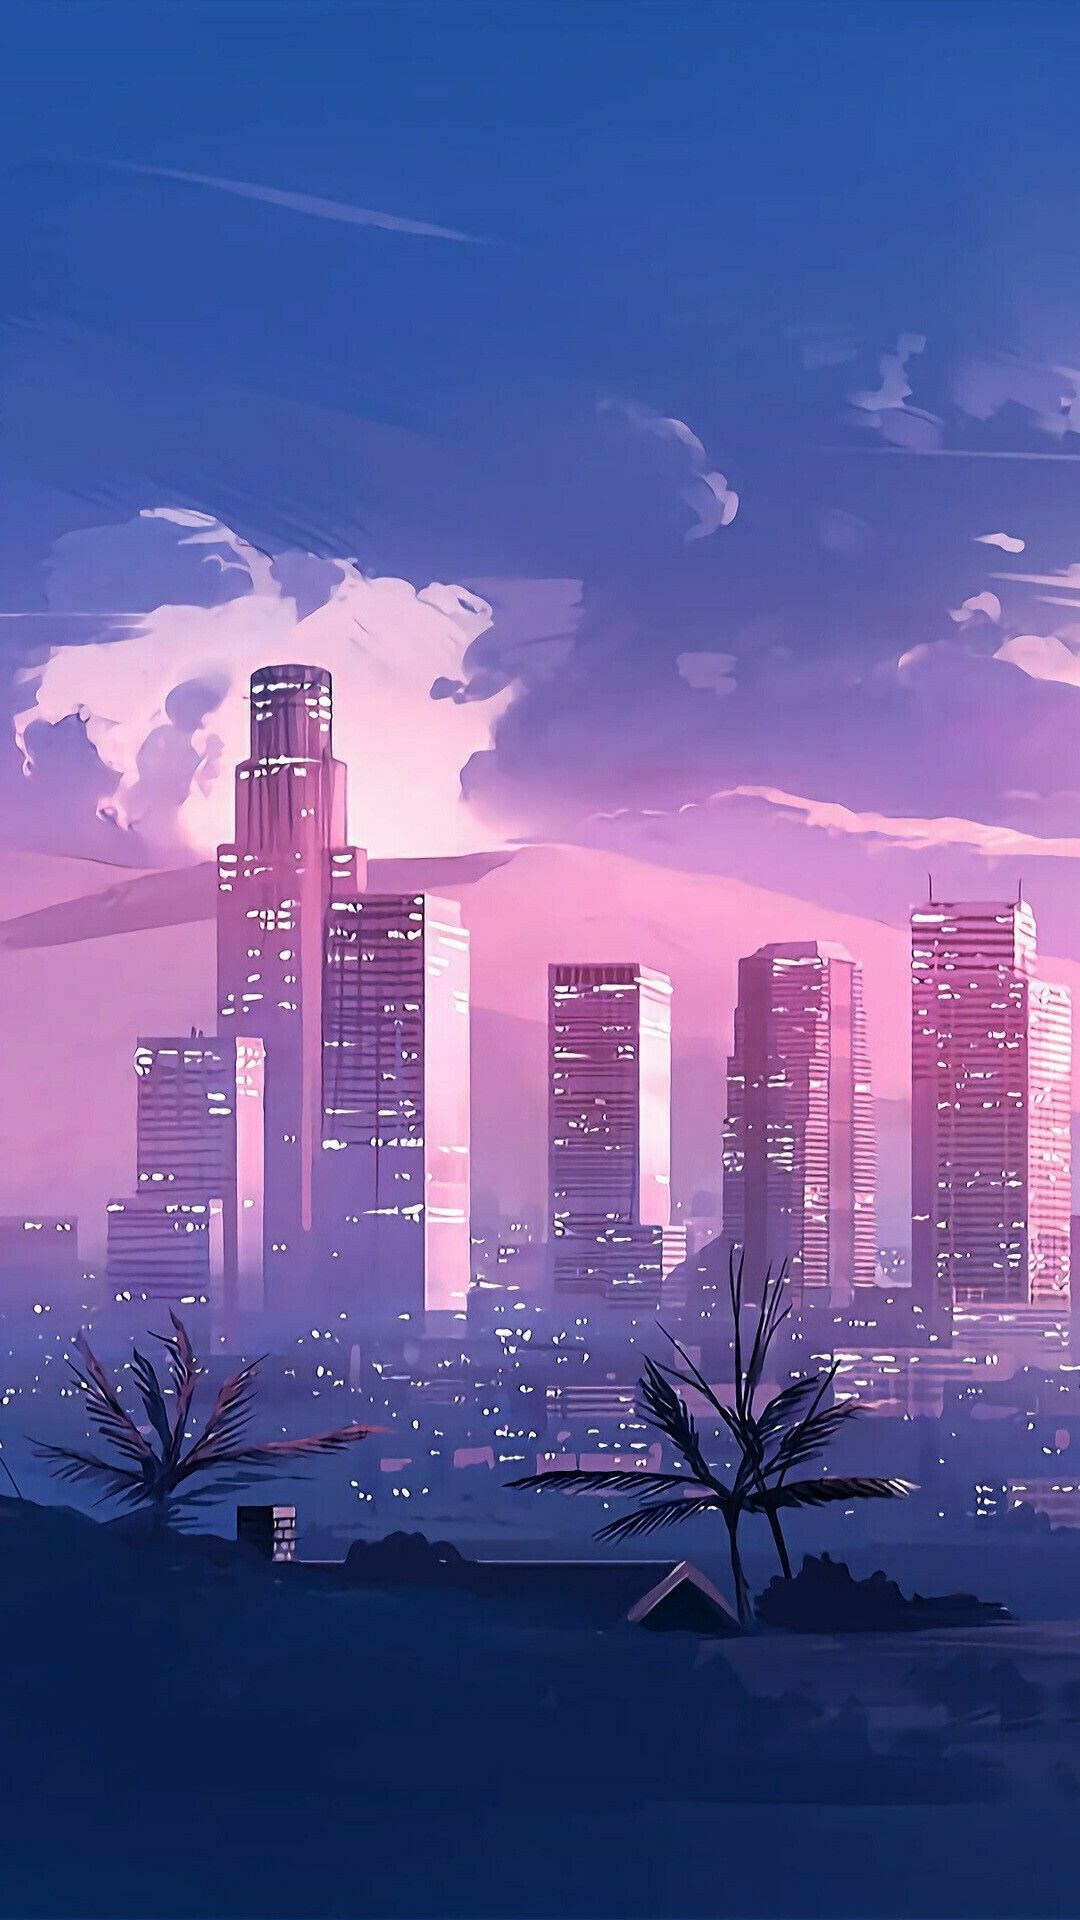 Aesthetic Anime City Wallpapers - Top Free Aesthetic Anime ...